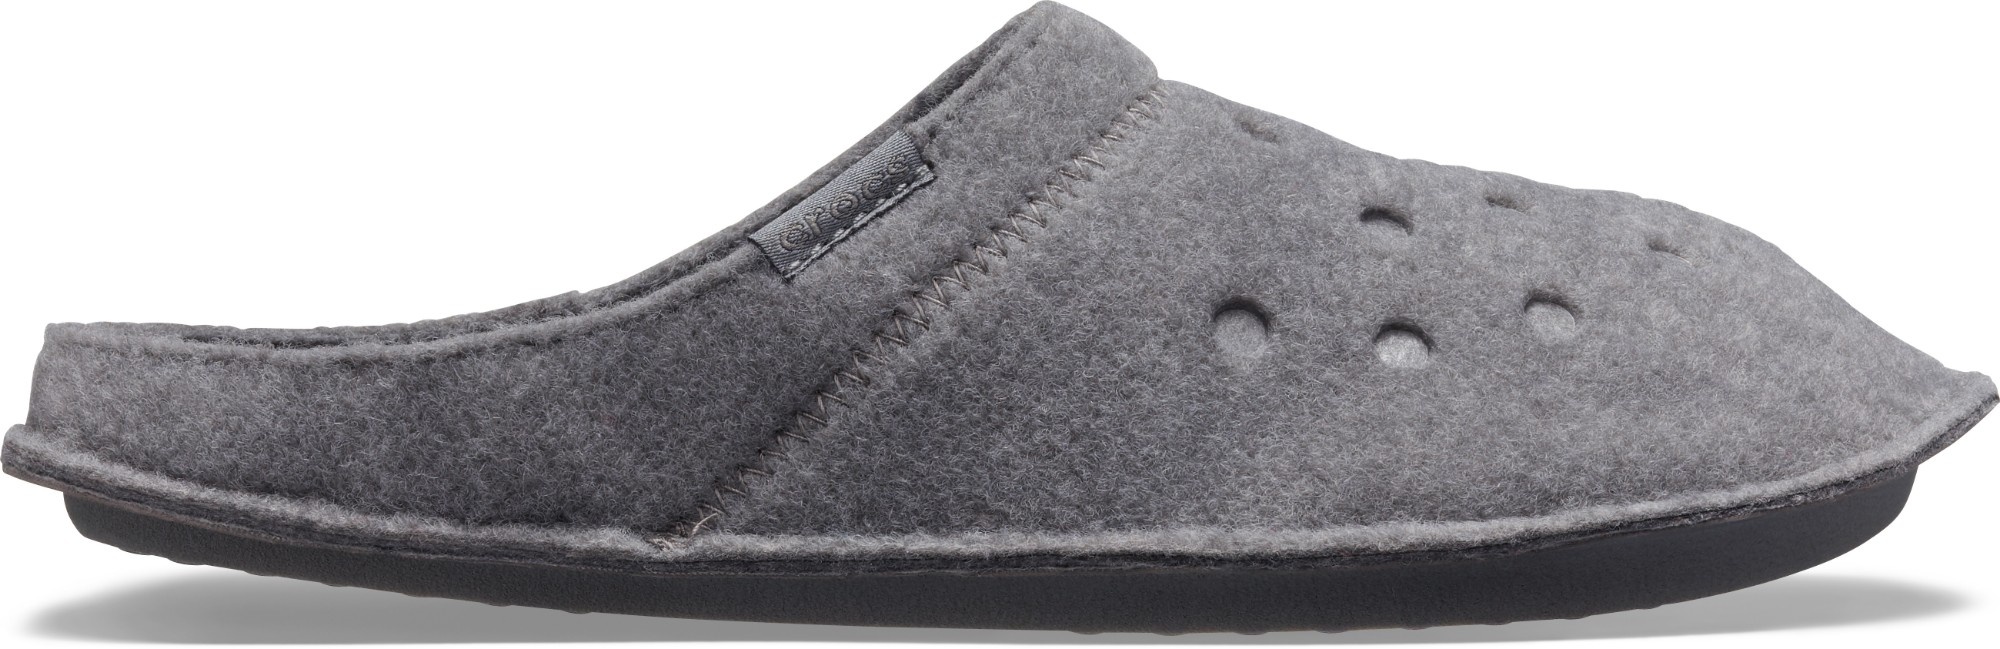 Crocs™ Classic Slipper Charcoal/Charcoal 42,5